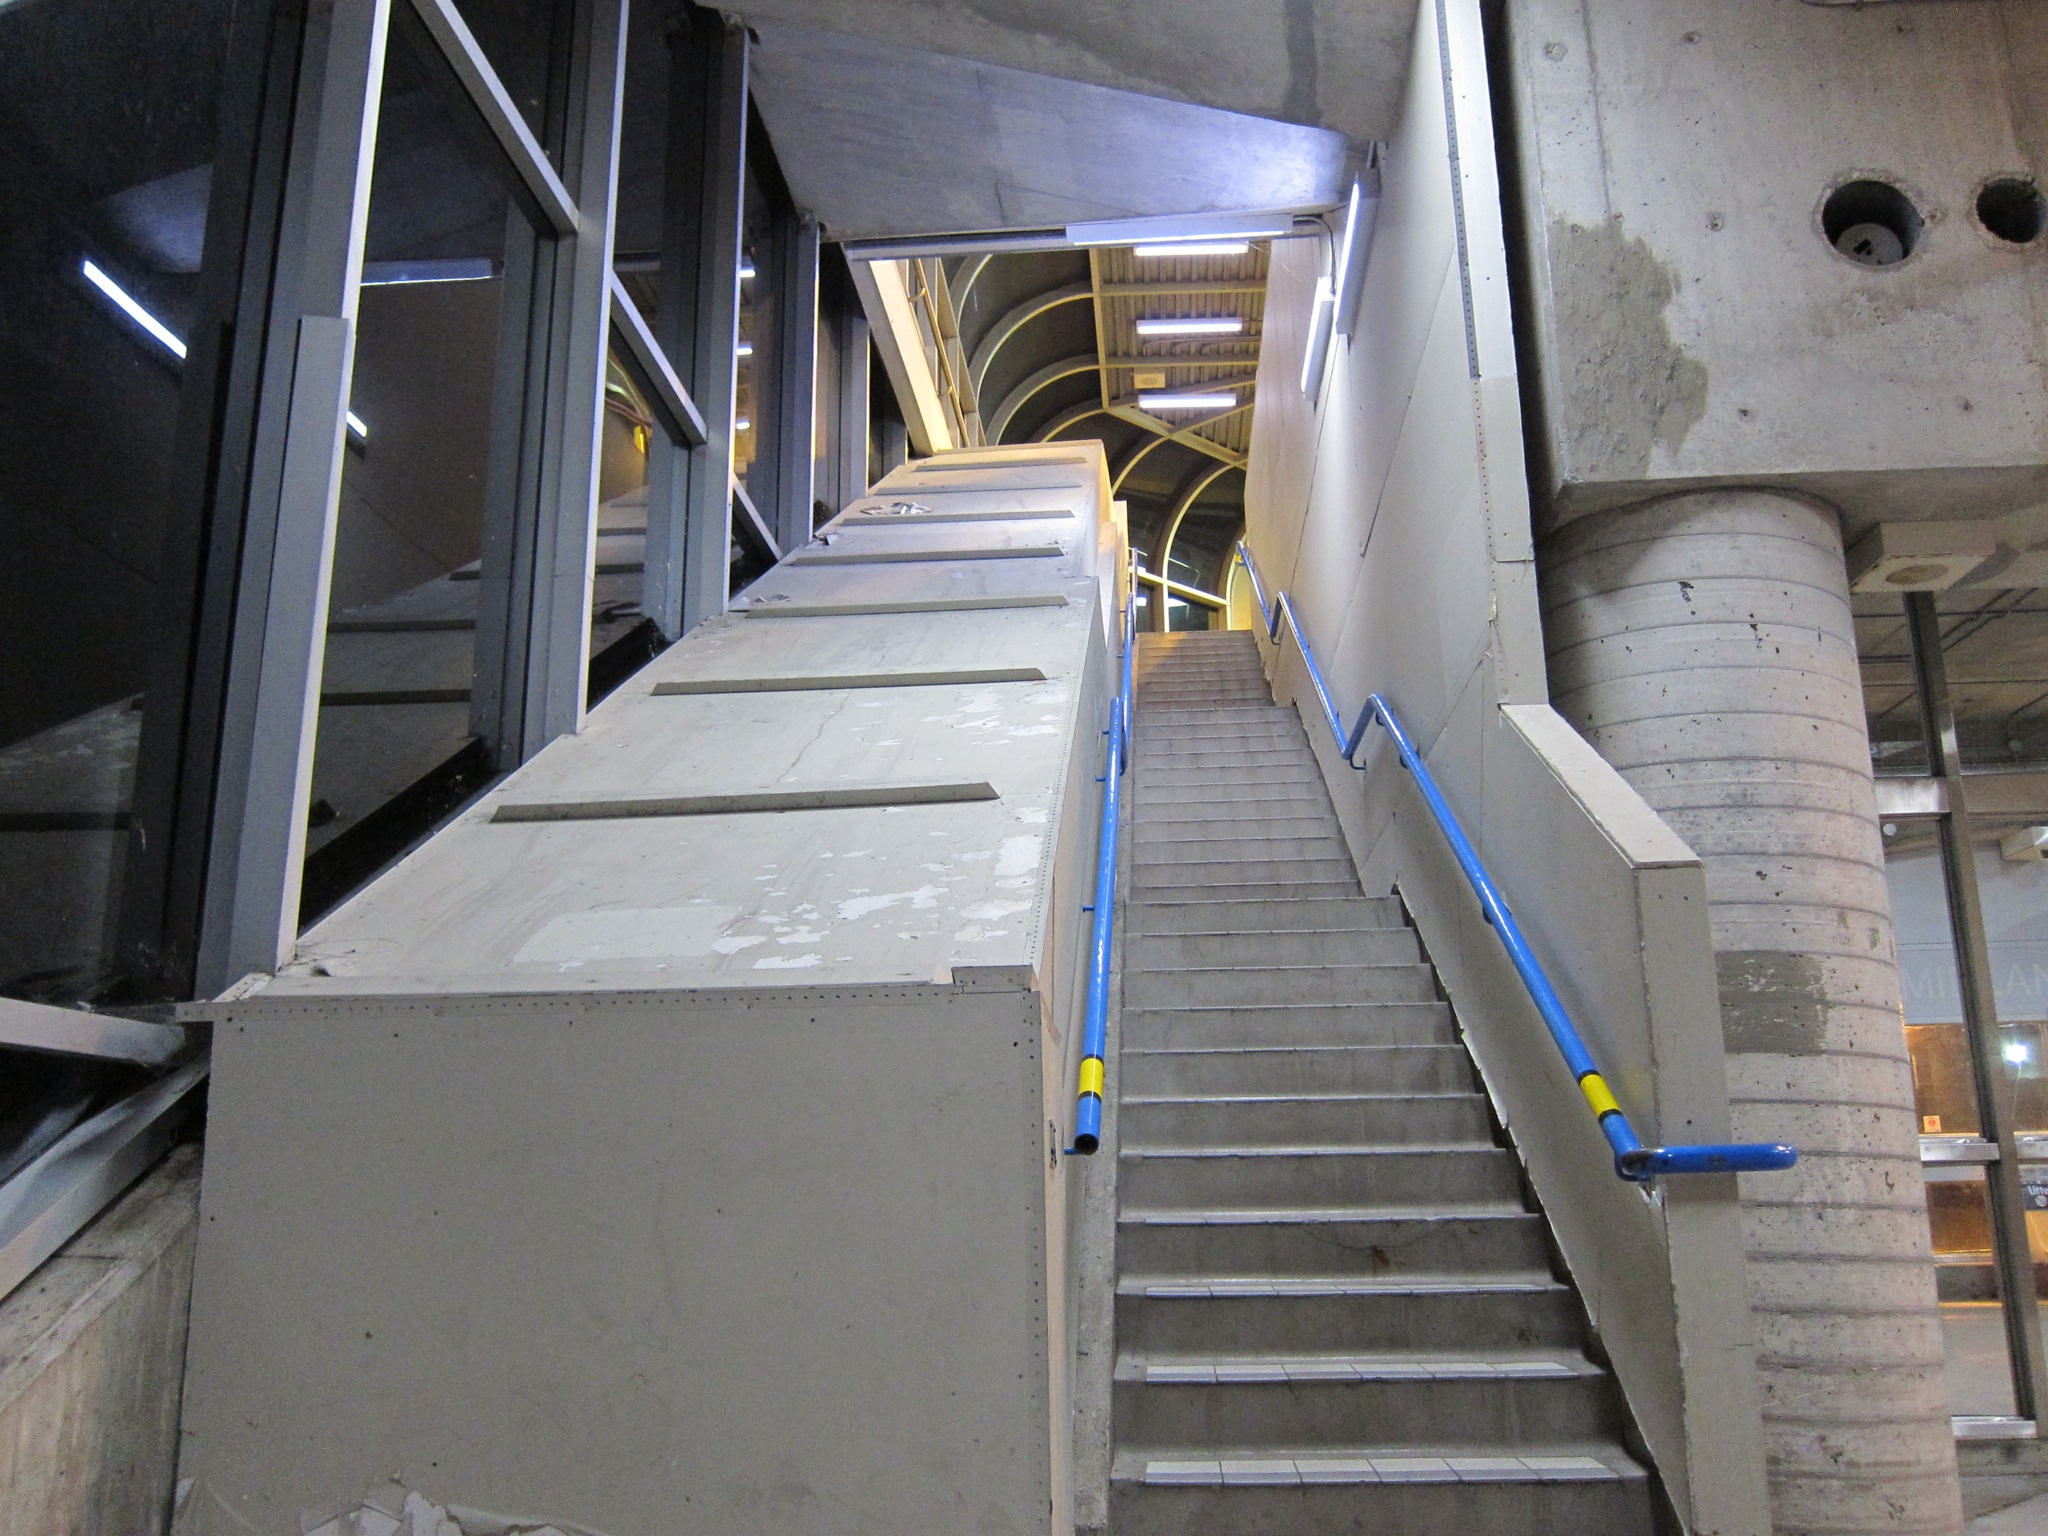 Photo: The left side used to be an escalator, right? Because it's unbelievable otherwise. No architect would do that.